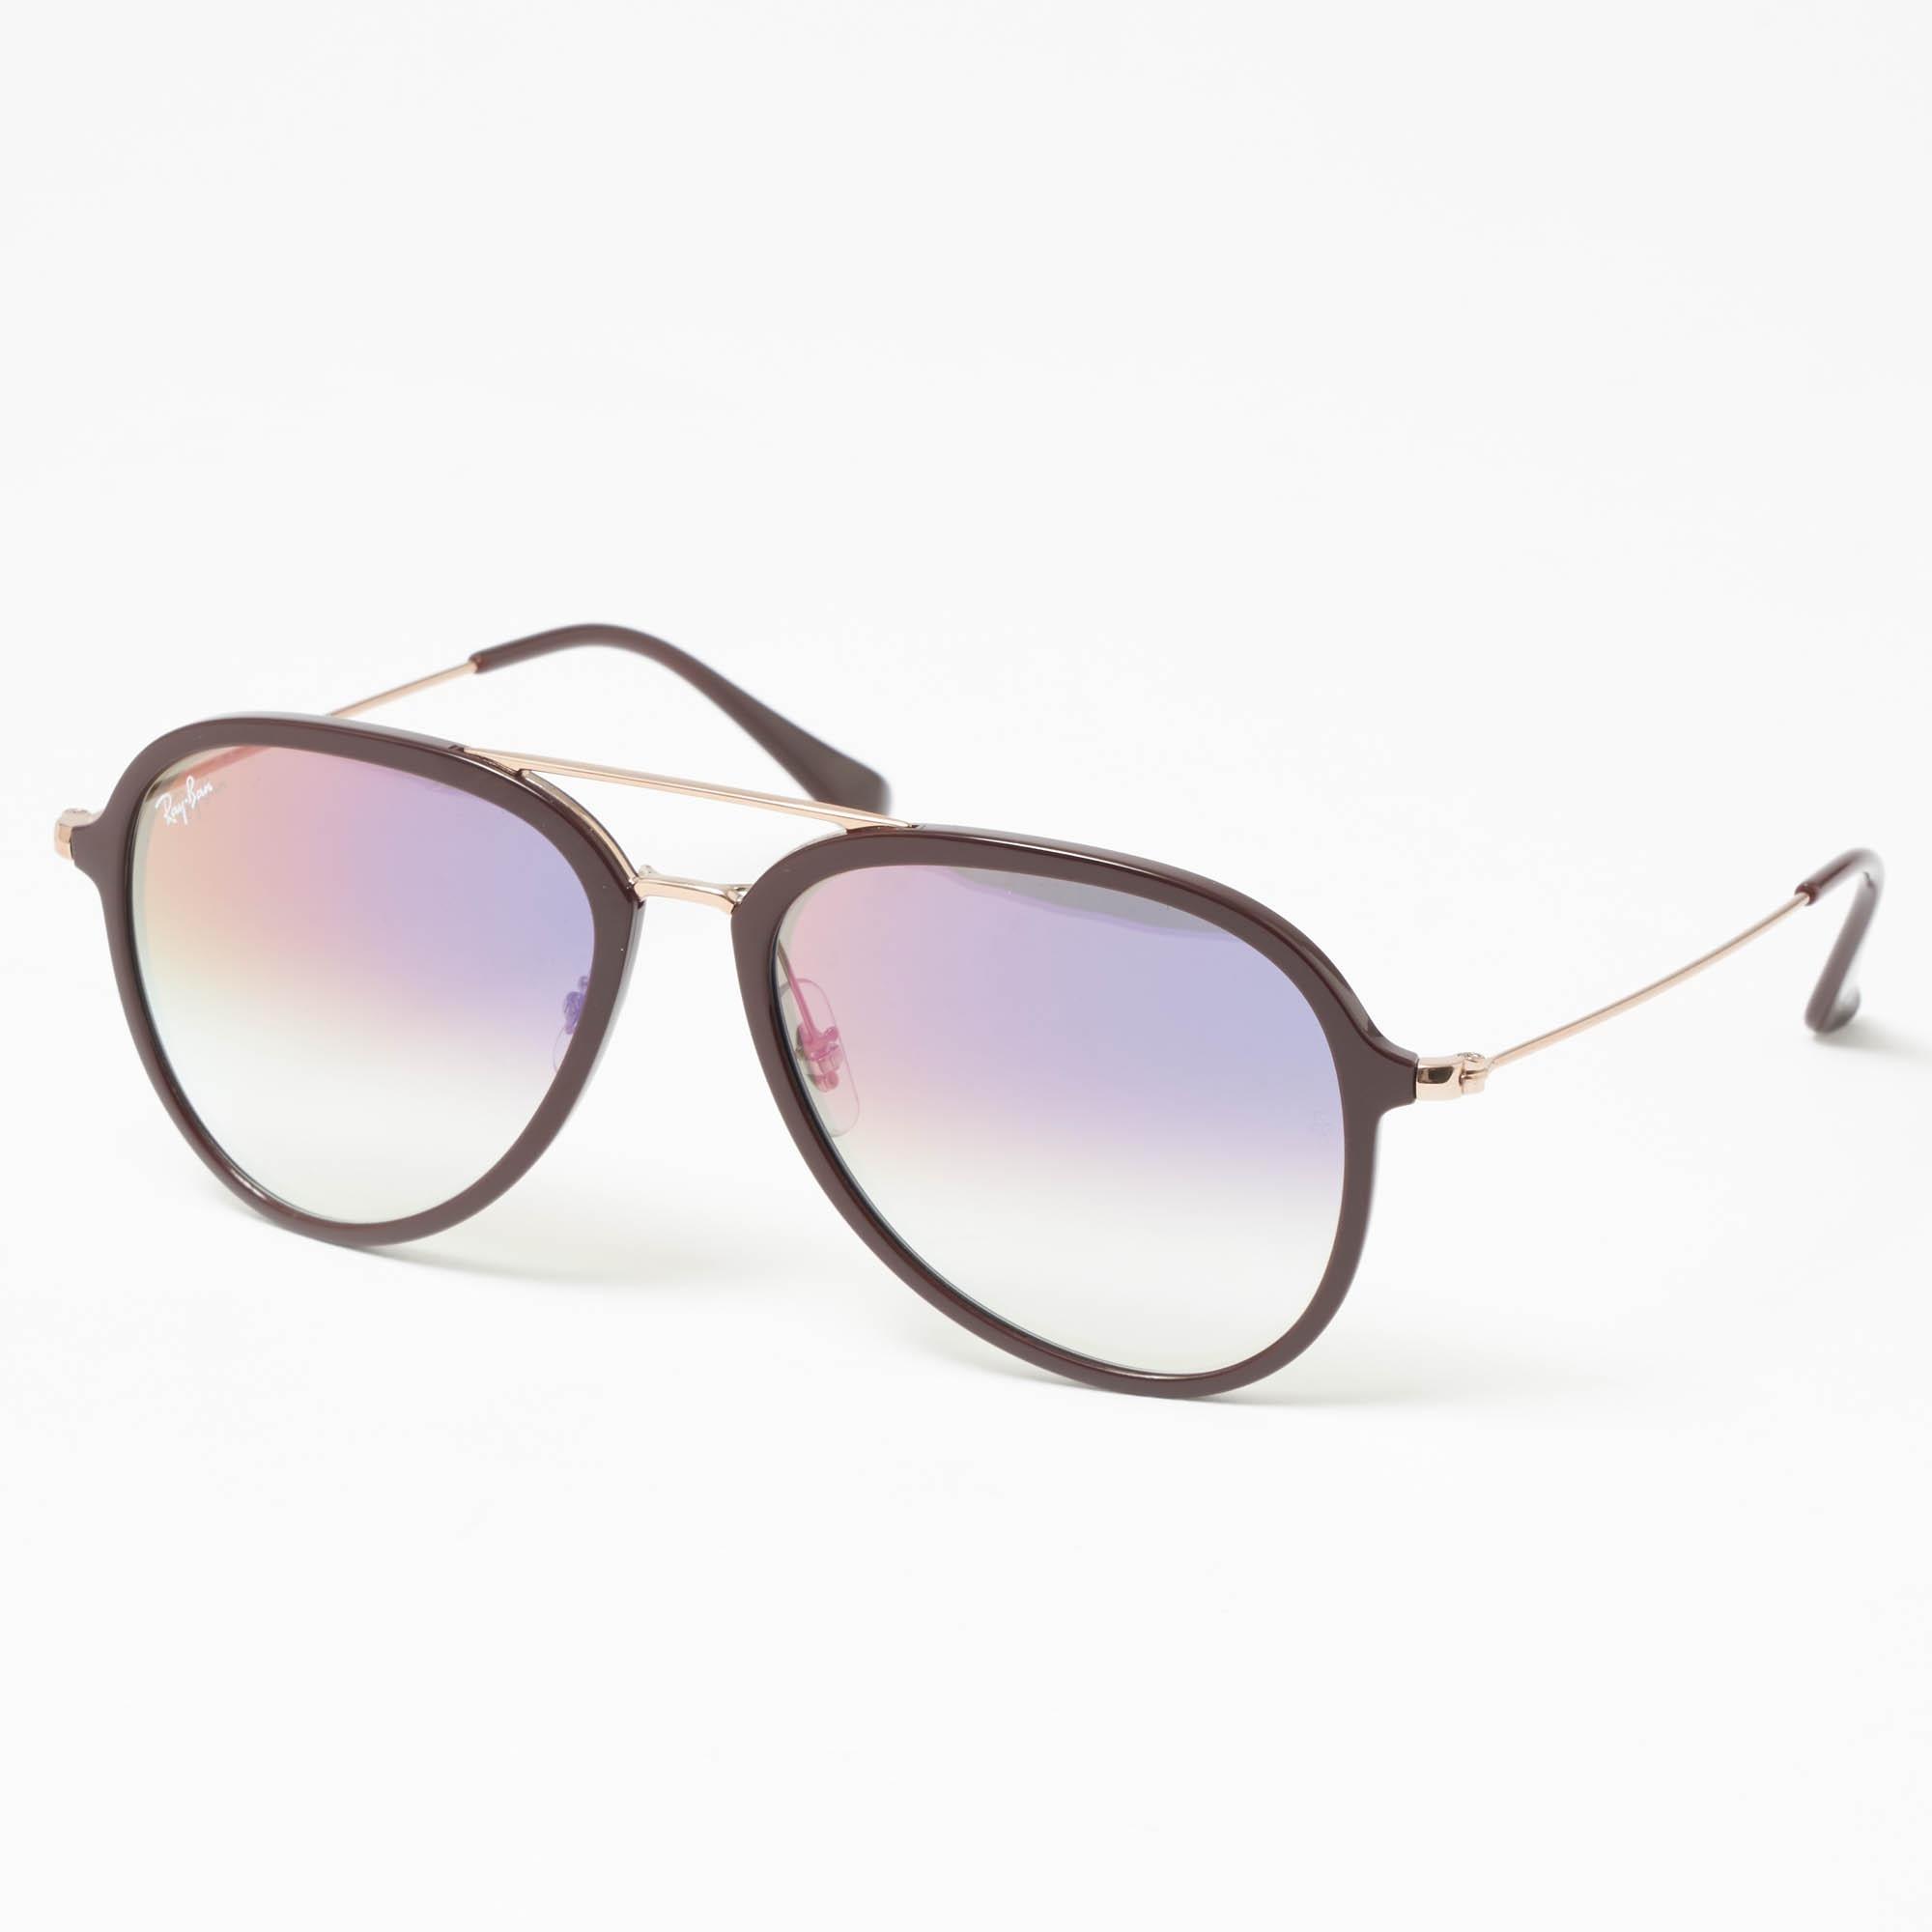 Ray-Ban Rb4298 Sunglasses - Violet Gradient Lenses in Purple - Lyst 457dfc4781